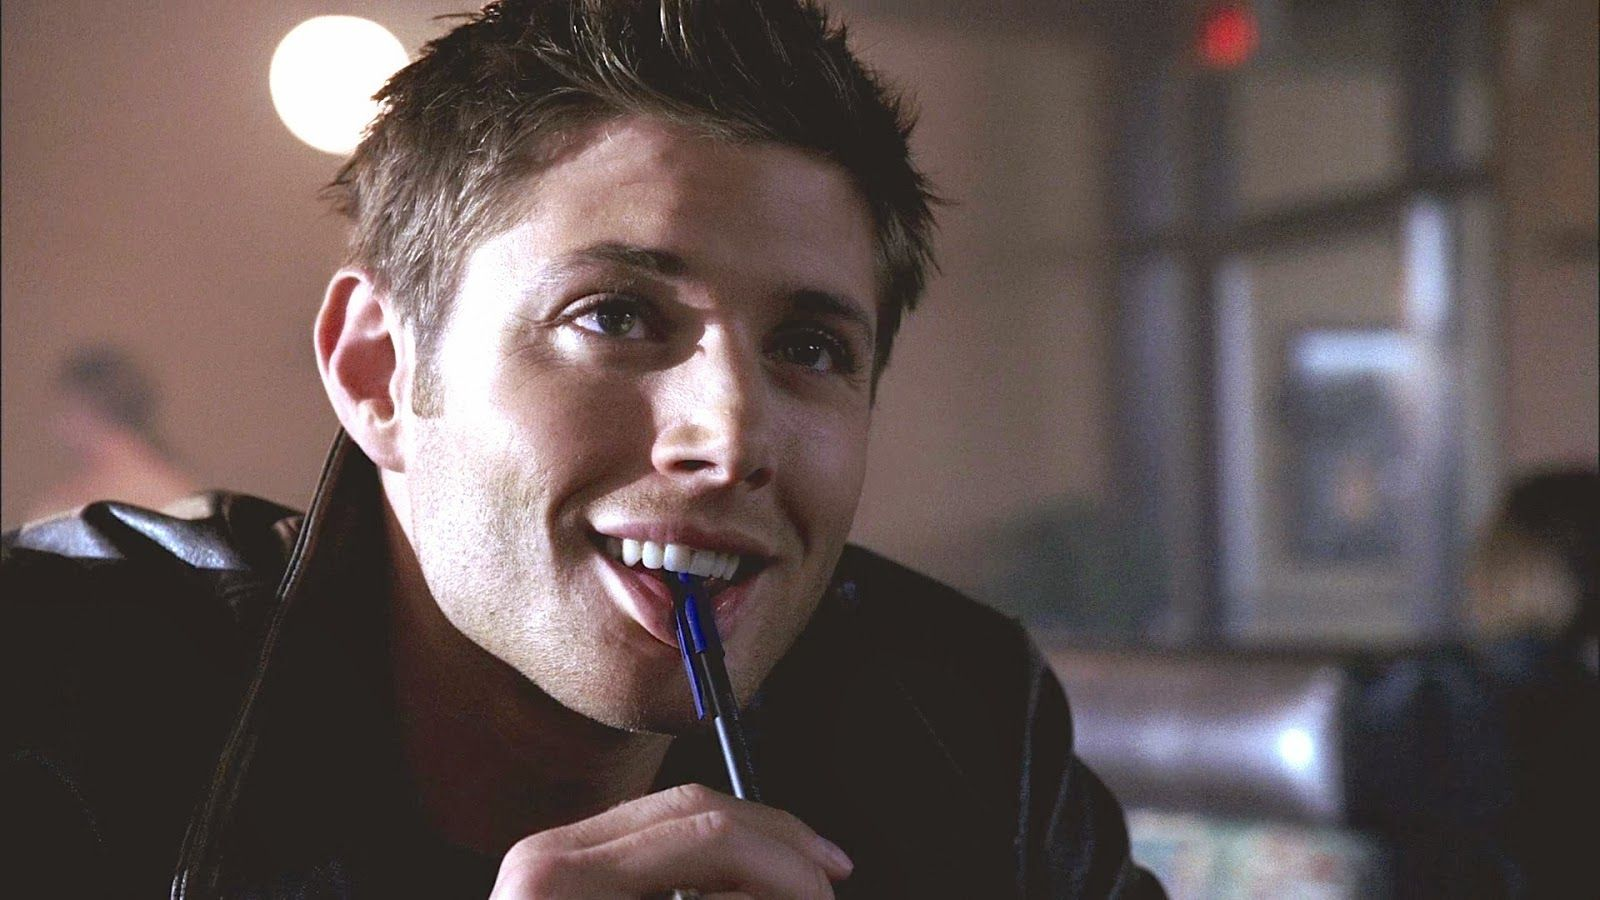 Supernatural: 20 Things Wrong With Dean Winchester That We All